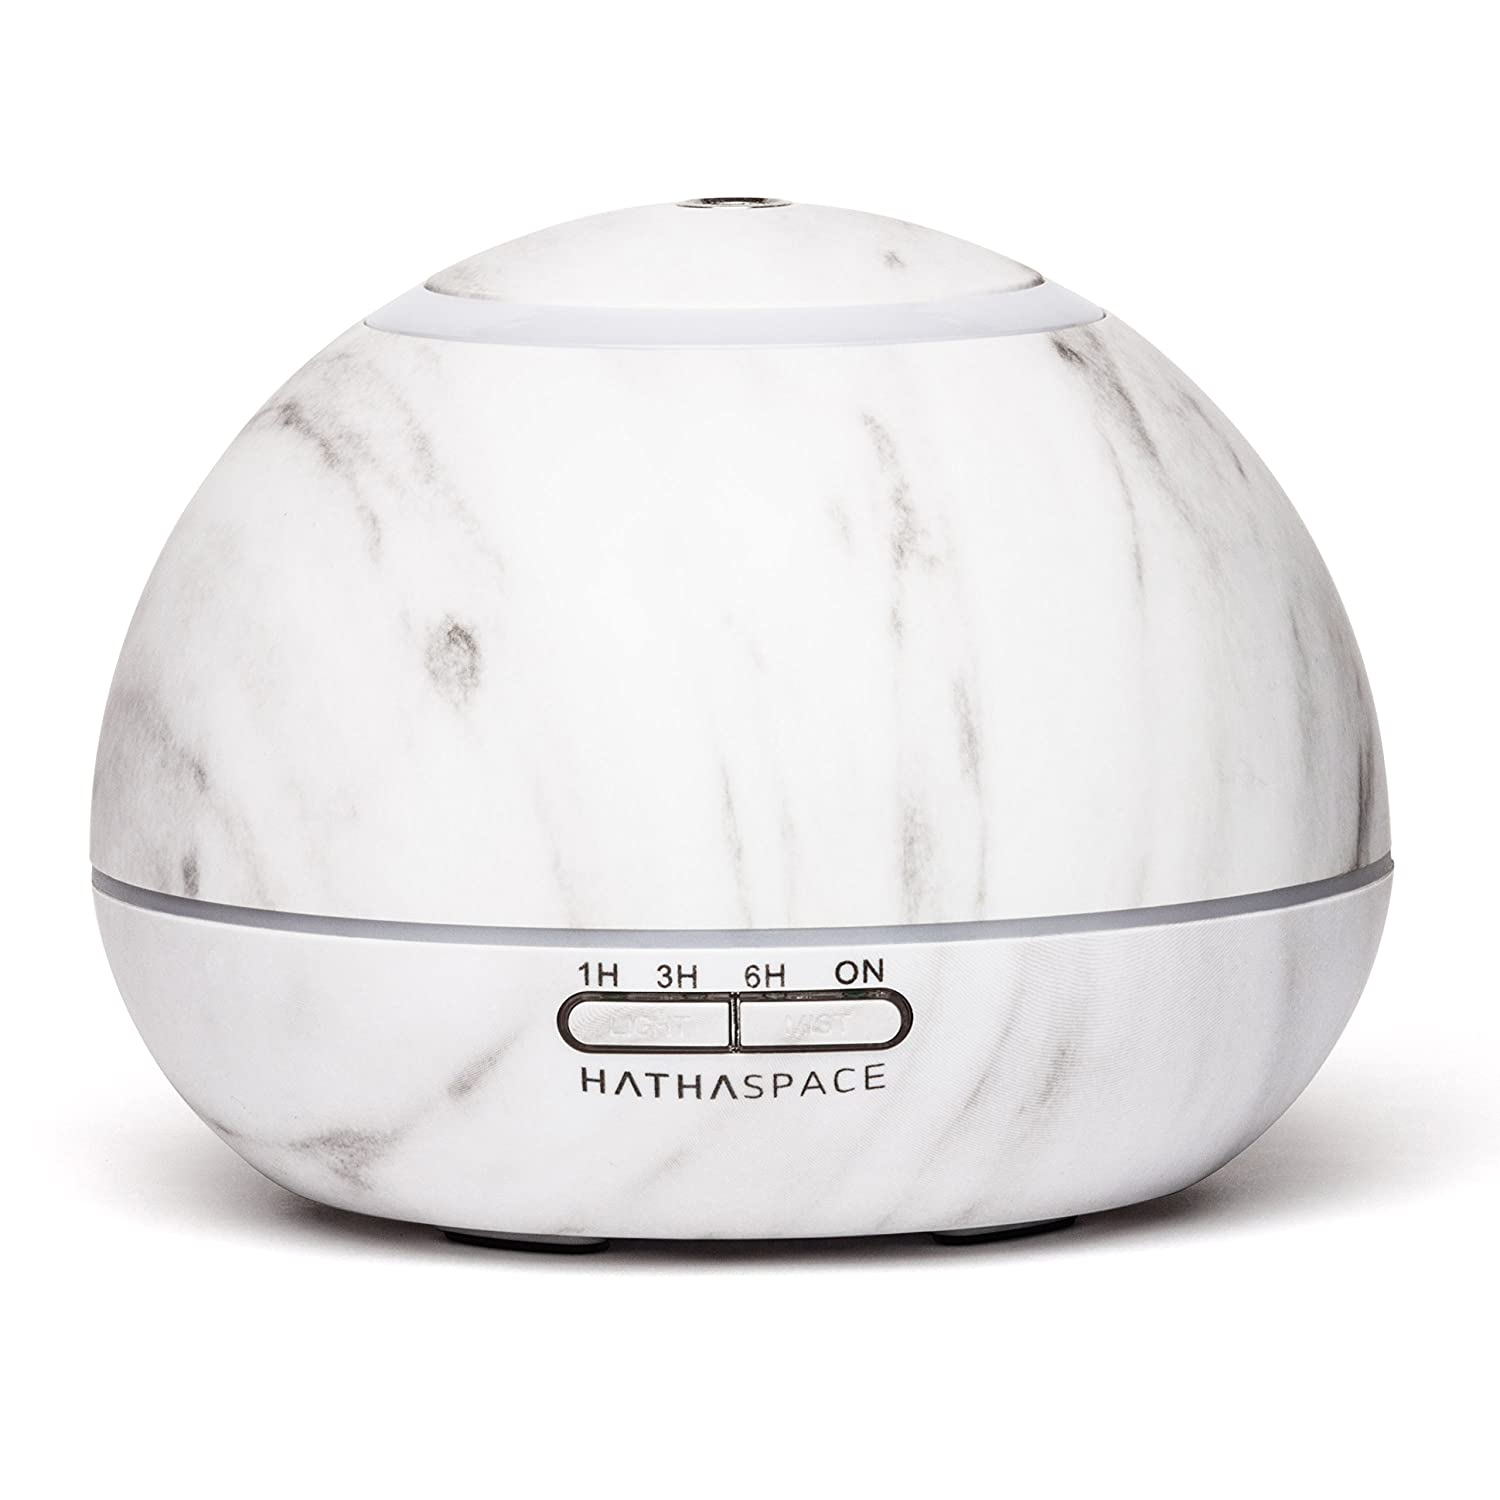 Hathaspace Marble Essential Oil Aroma Diffuser, 350ml Aromatherapy Fragrance Diffuser & Ultrasonic Cool Mist Room Humidifier, 18 Hour Capacity, BPA-Free, 7 Color Optional Ambient LED Light (White)